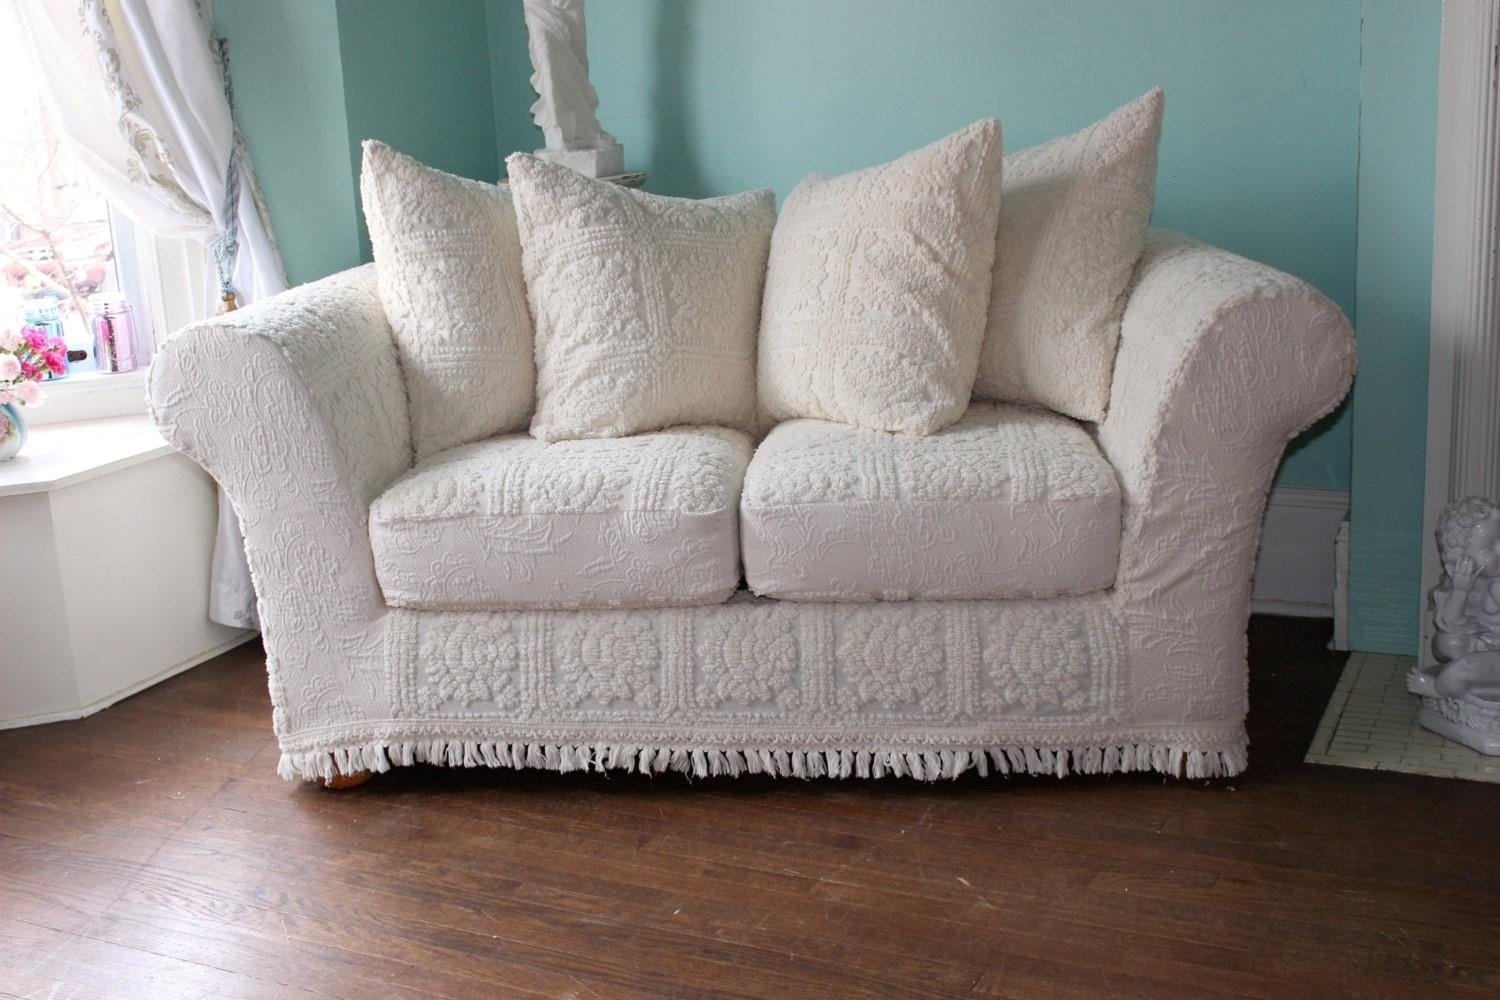 chic chair covers birmingham chairs and table rentals 20 top shabby sofa slipcovers ideas